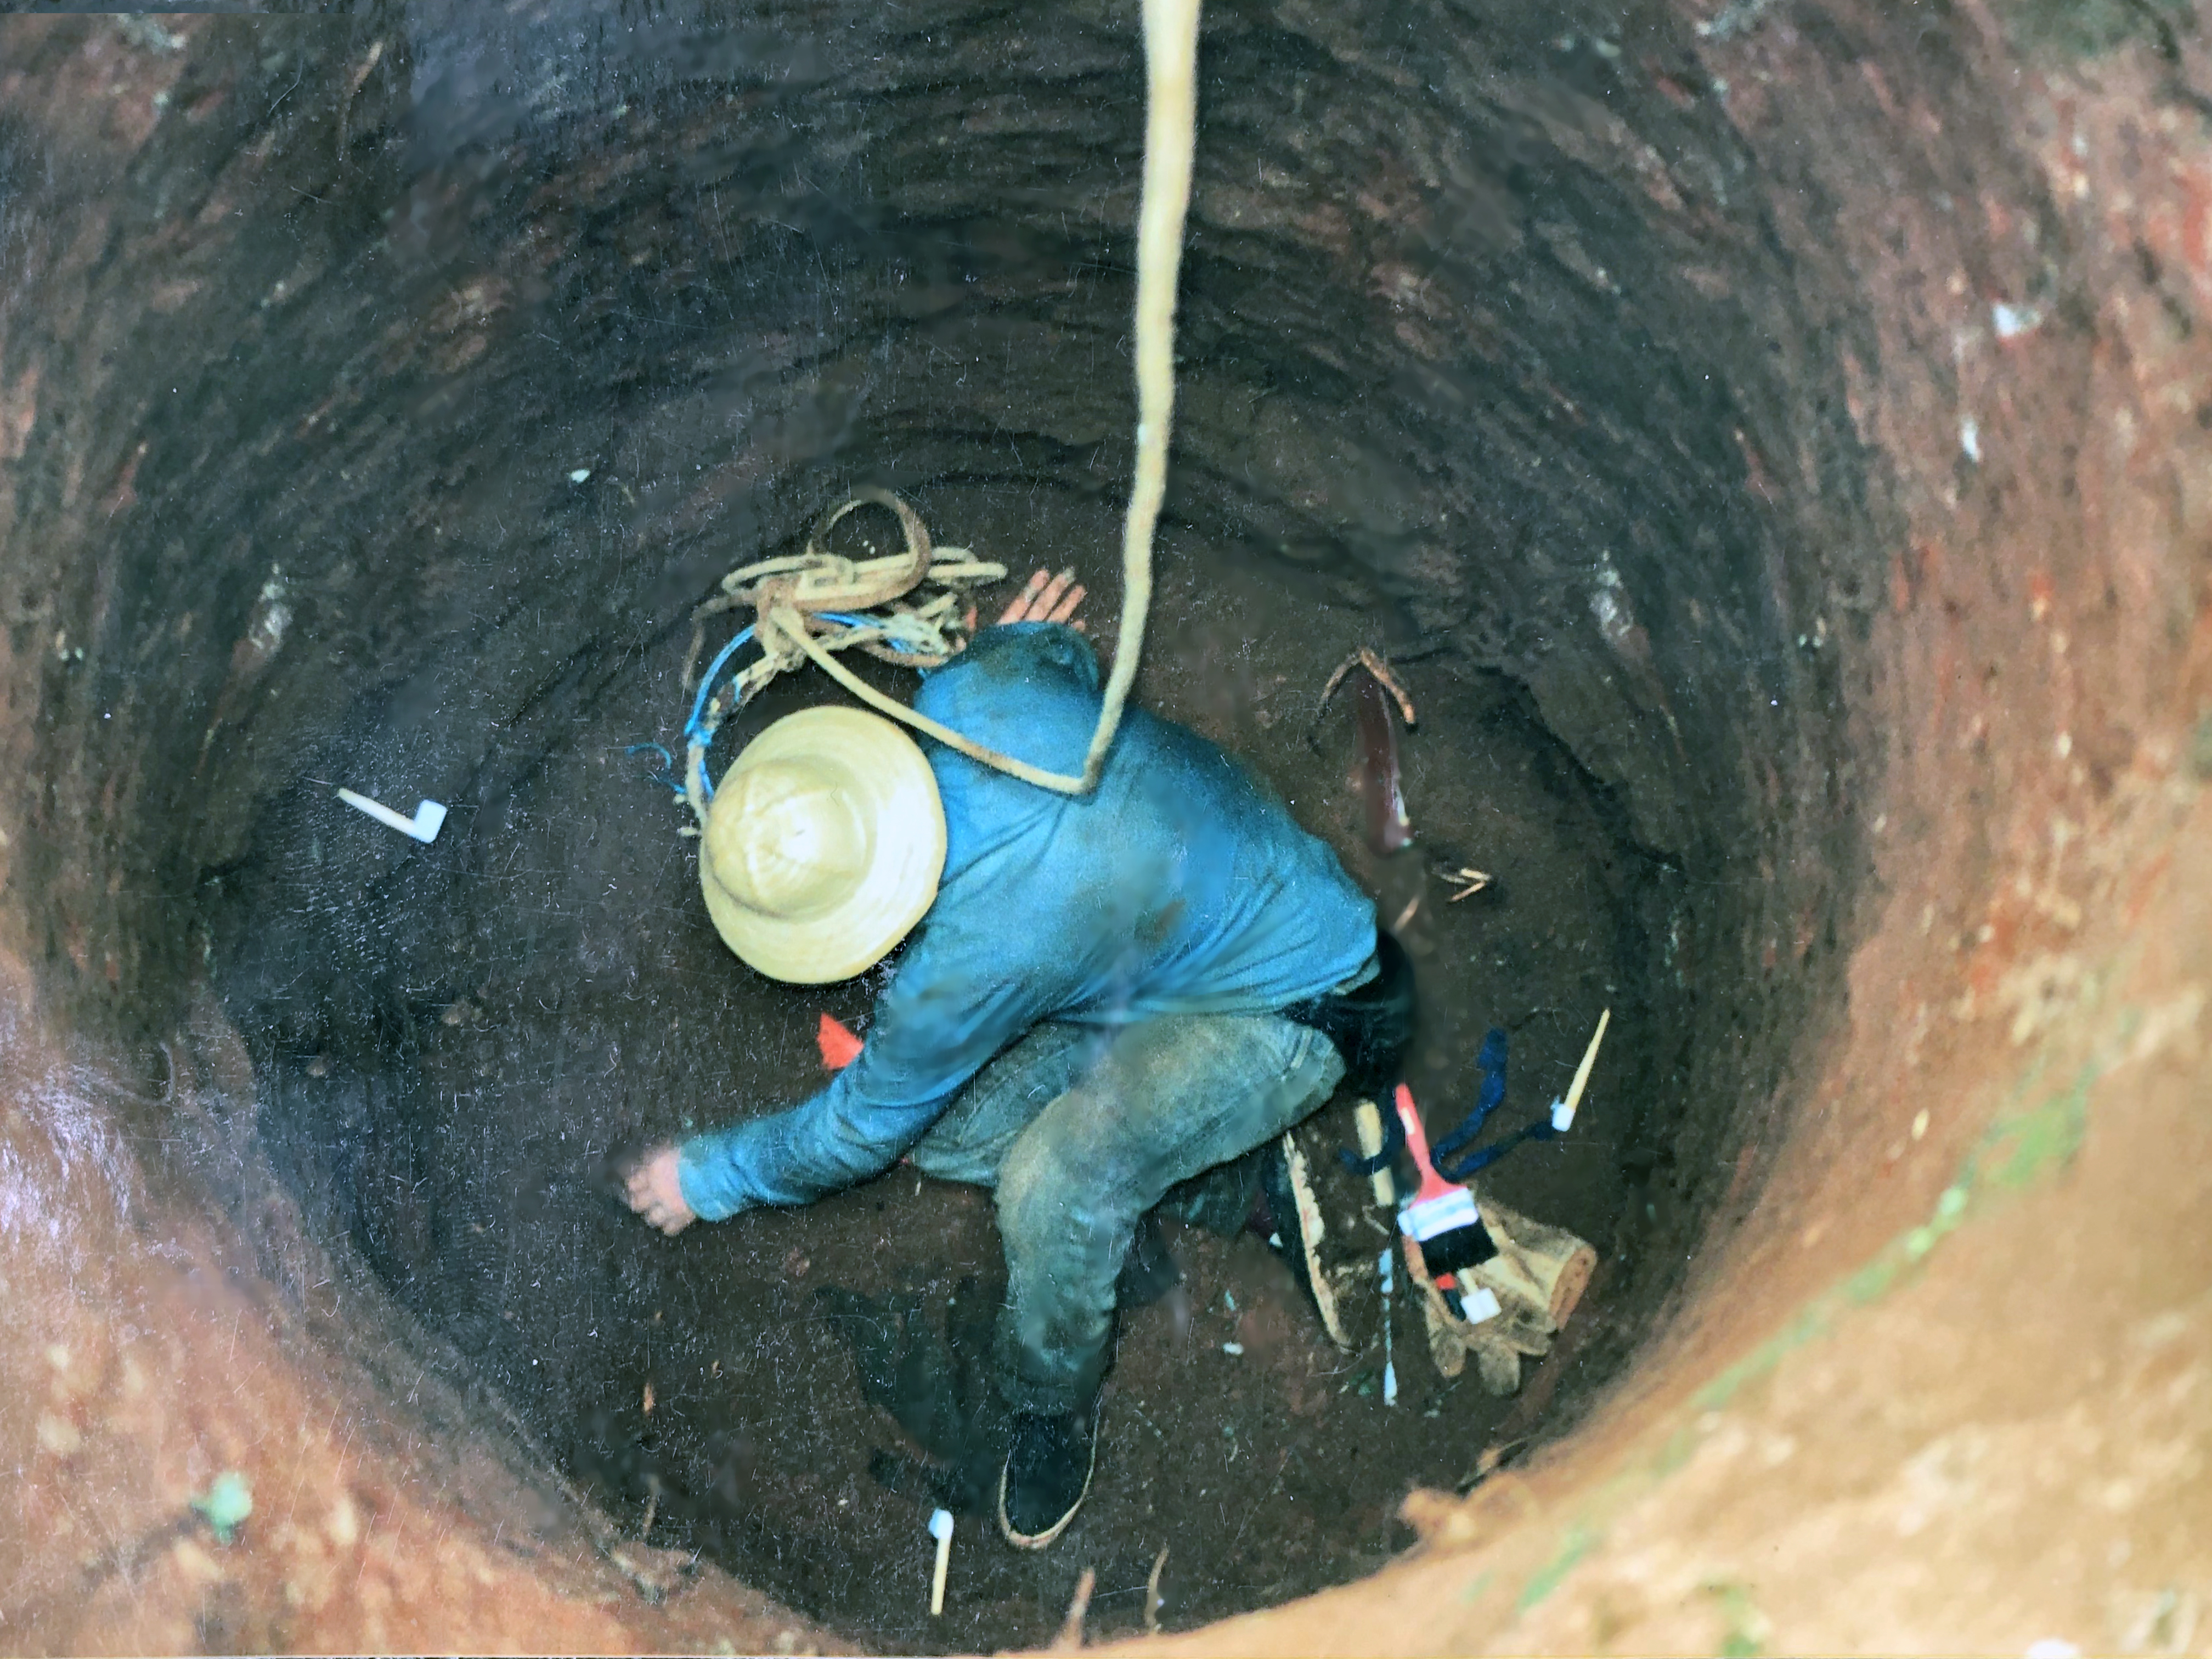 The well in Dos Erres was examined during a dig by forensic anthopologists that was organized by Aura Elana Farfan. (Submitted by FAMDEGUA)